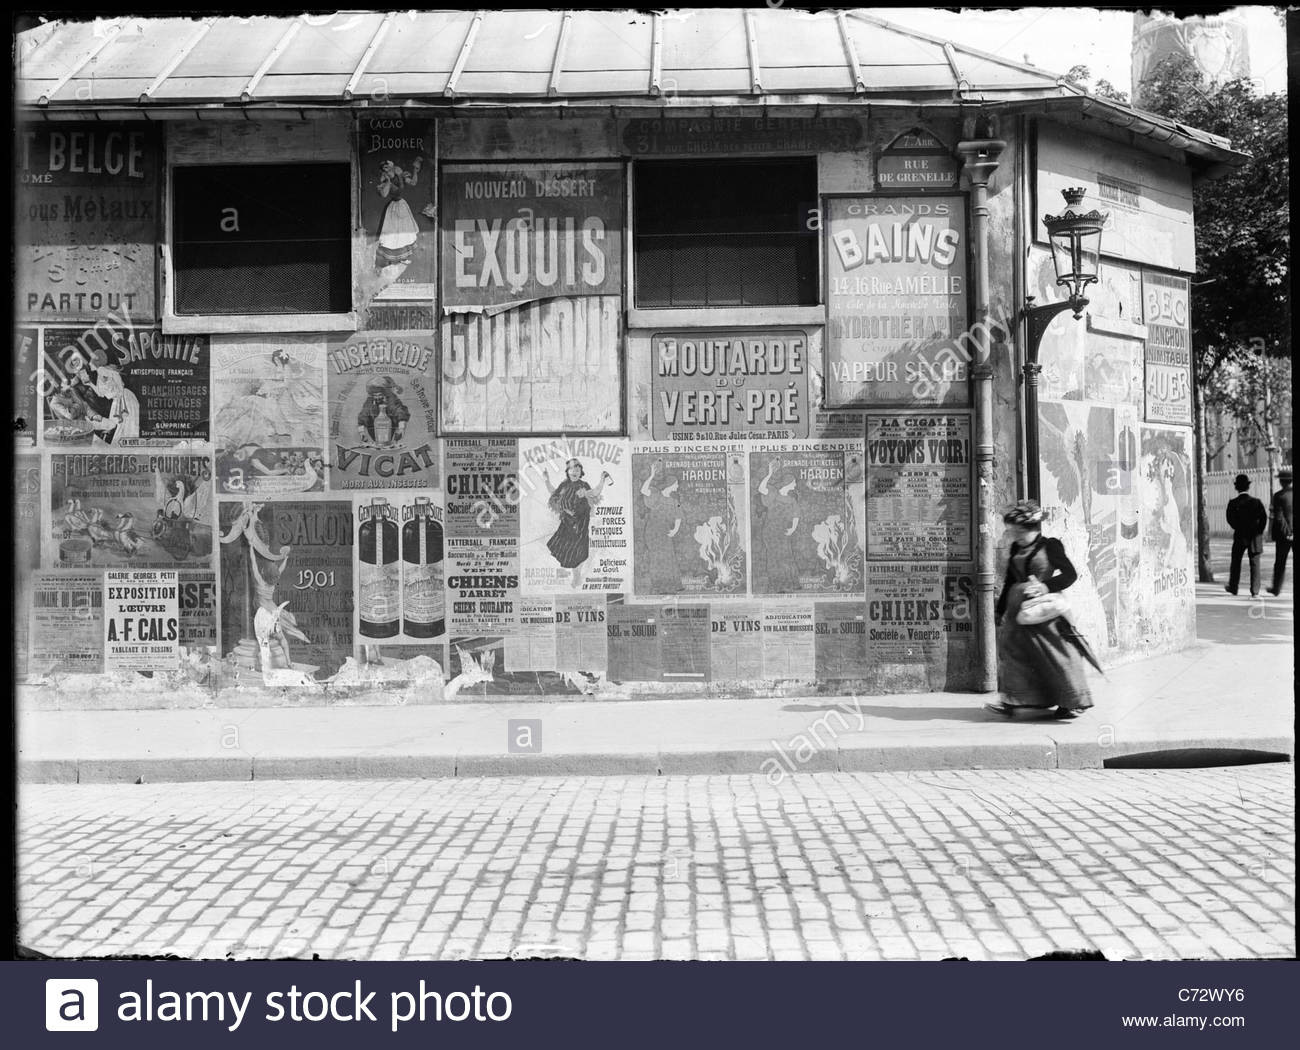 street posters on Rue de Grenelle, Paris France around 1900 - Stock Image